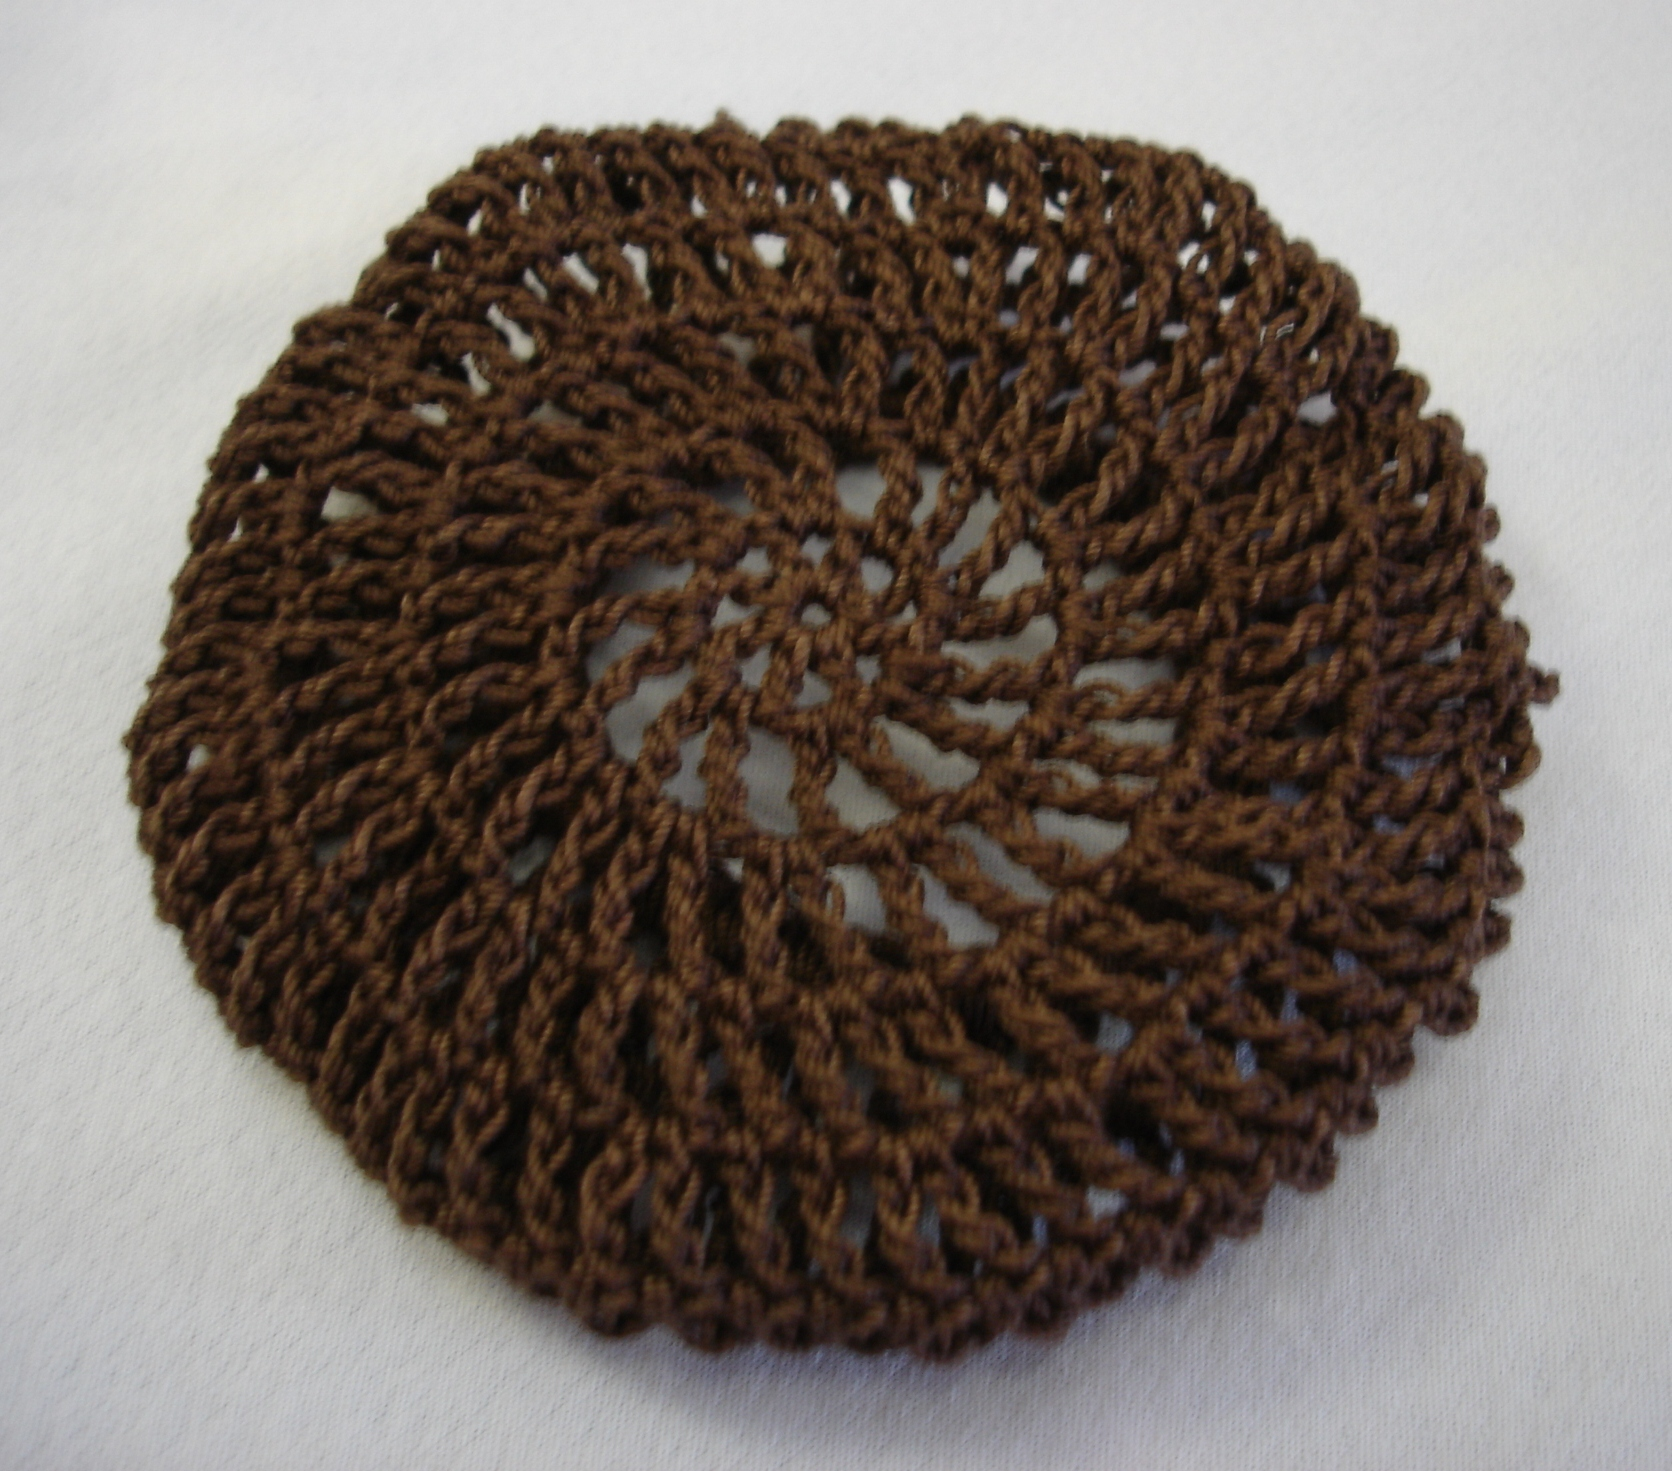 Crochet Hair Bun Cover : ... bun cover amish mennonite or here crocheted black hair net bun cover